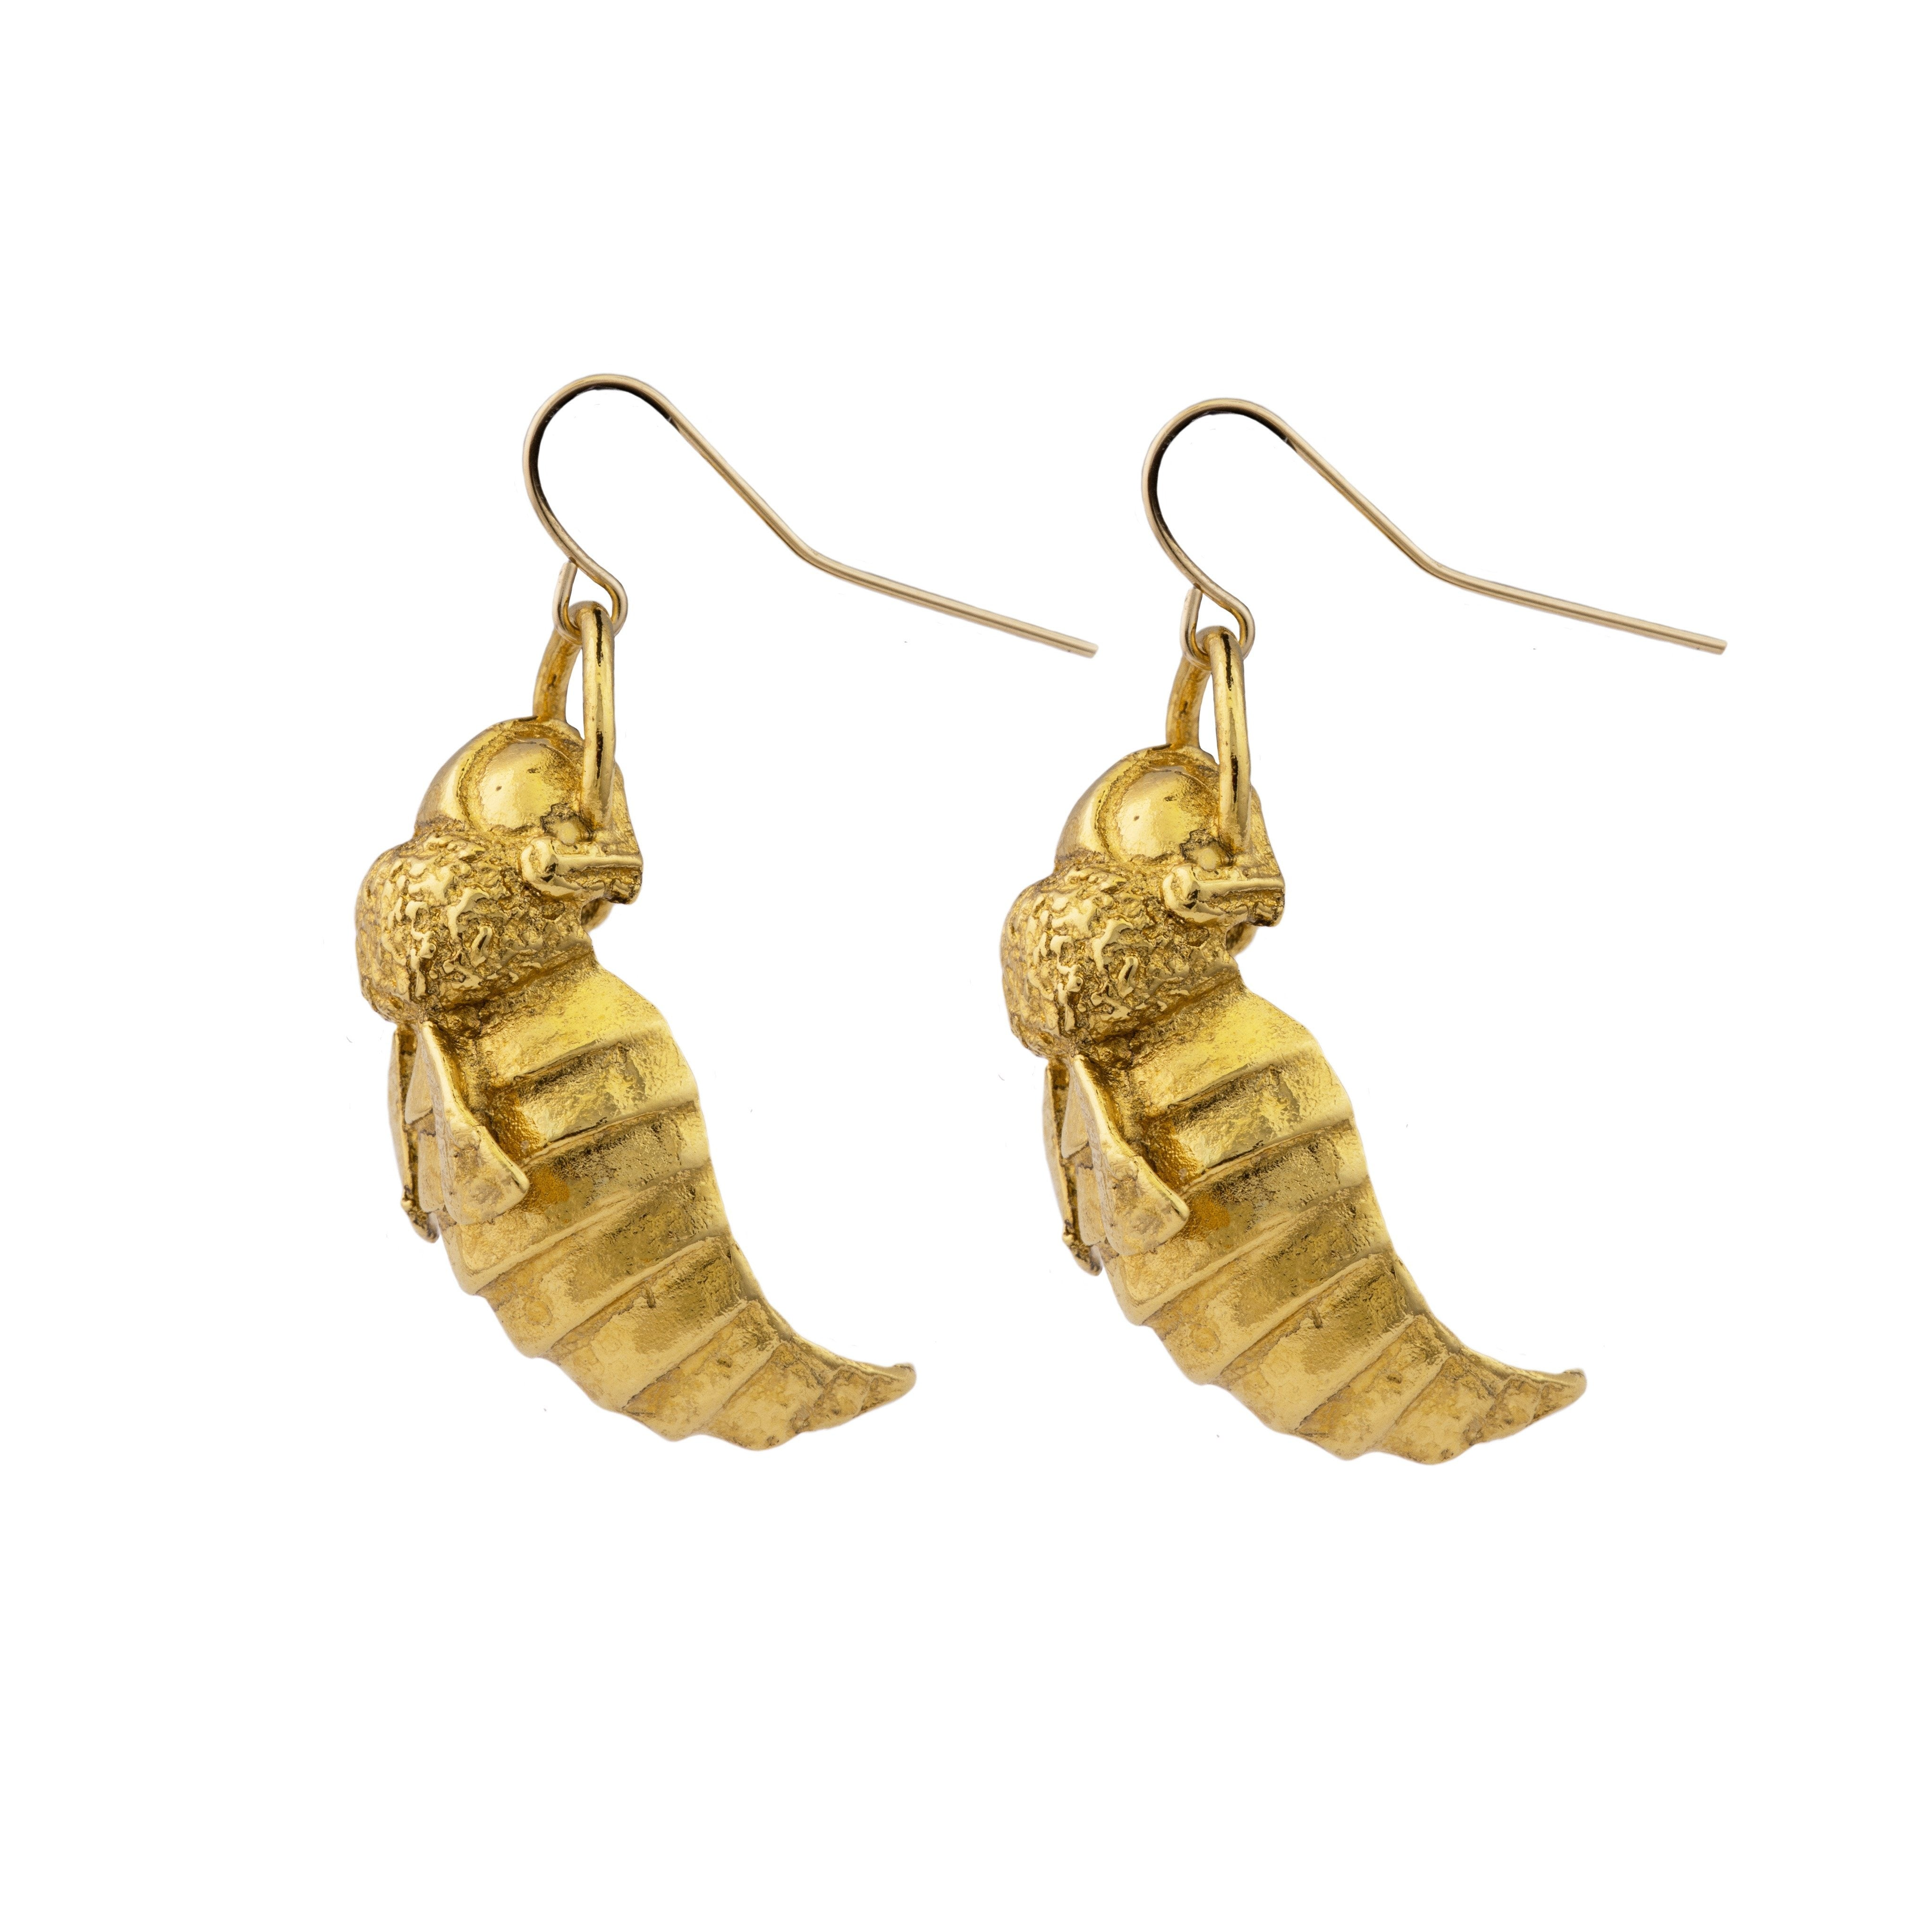 Gold-Plate Bumble Bee Earrings